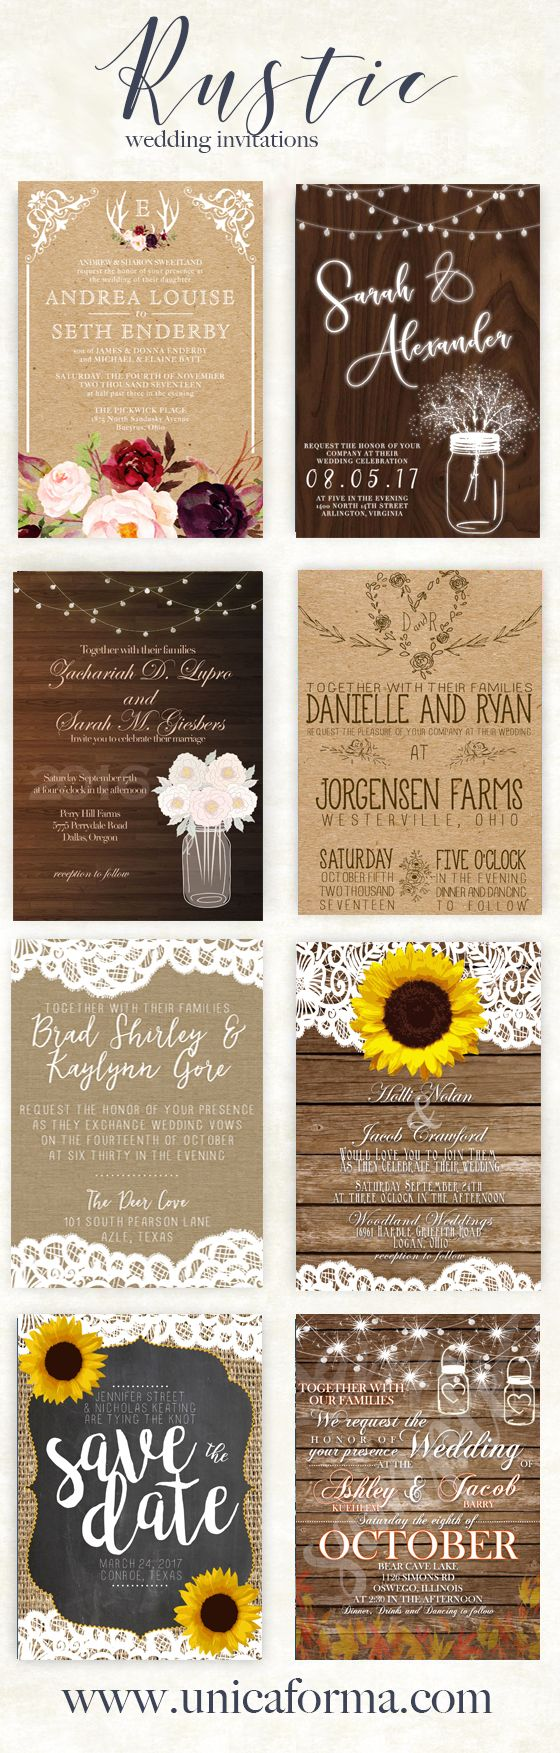 zazzle wedding invitations promo code%0A Rustic wedding invitations  Sunflower wedding invitations  Burlap and lace  wood wedding  Mason jars